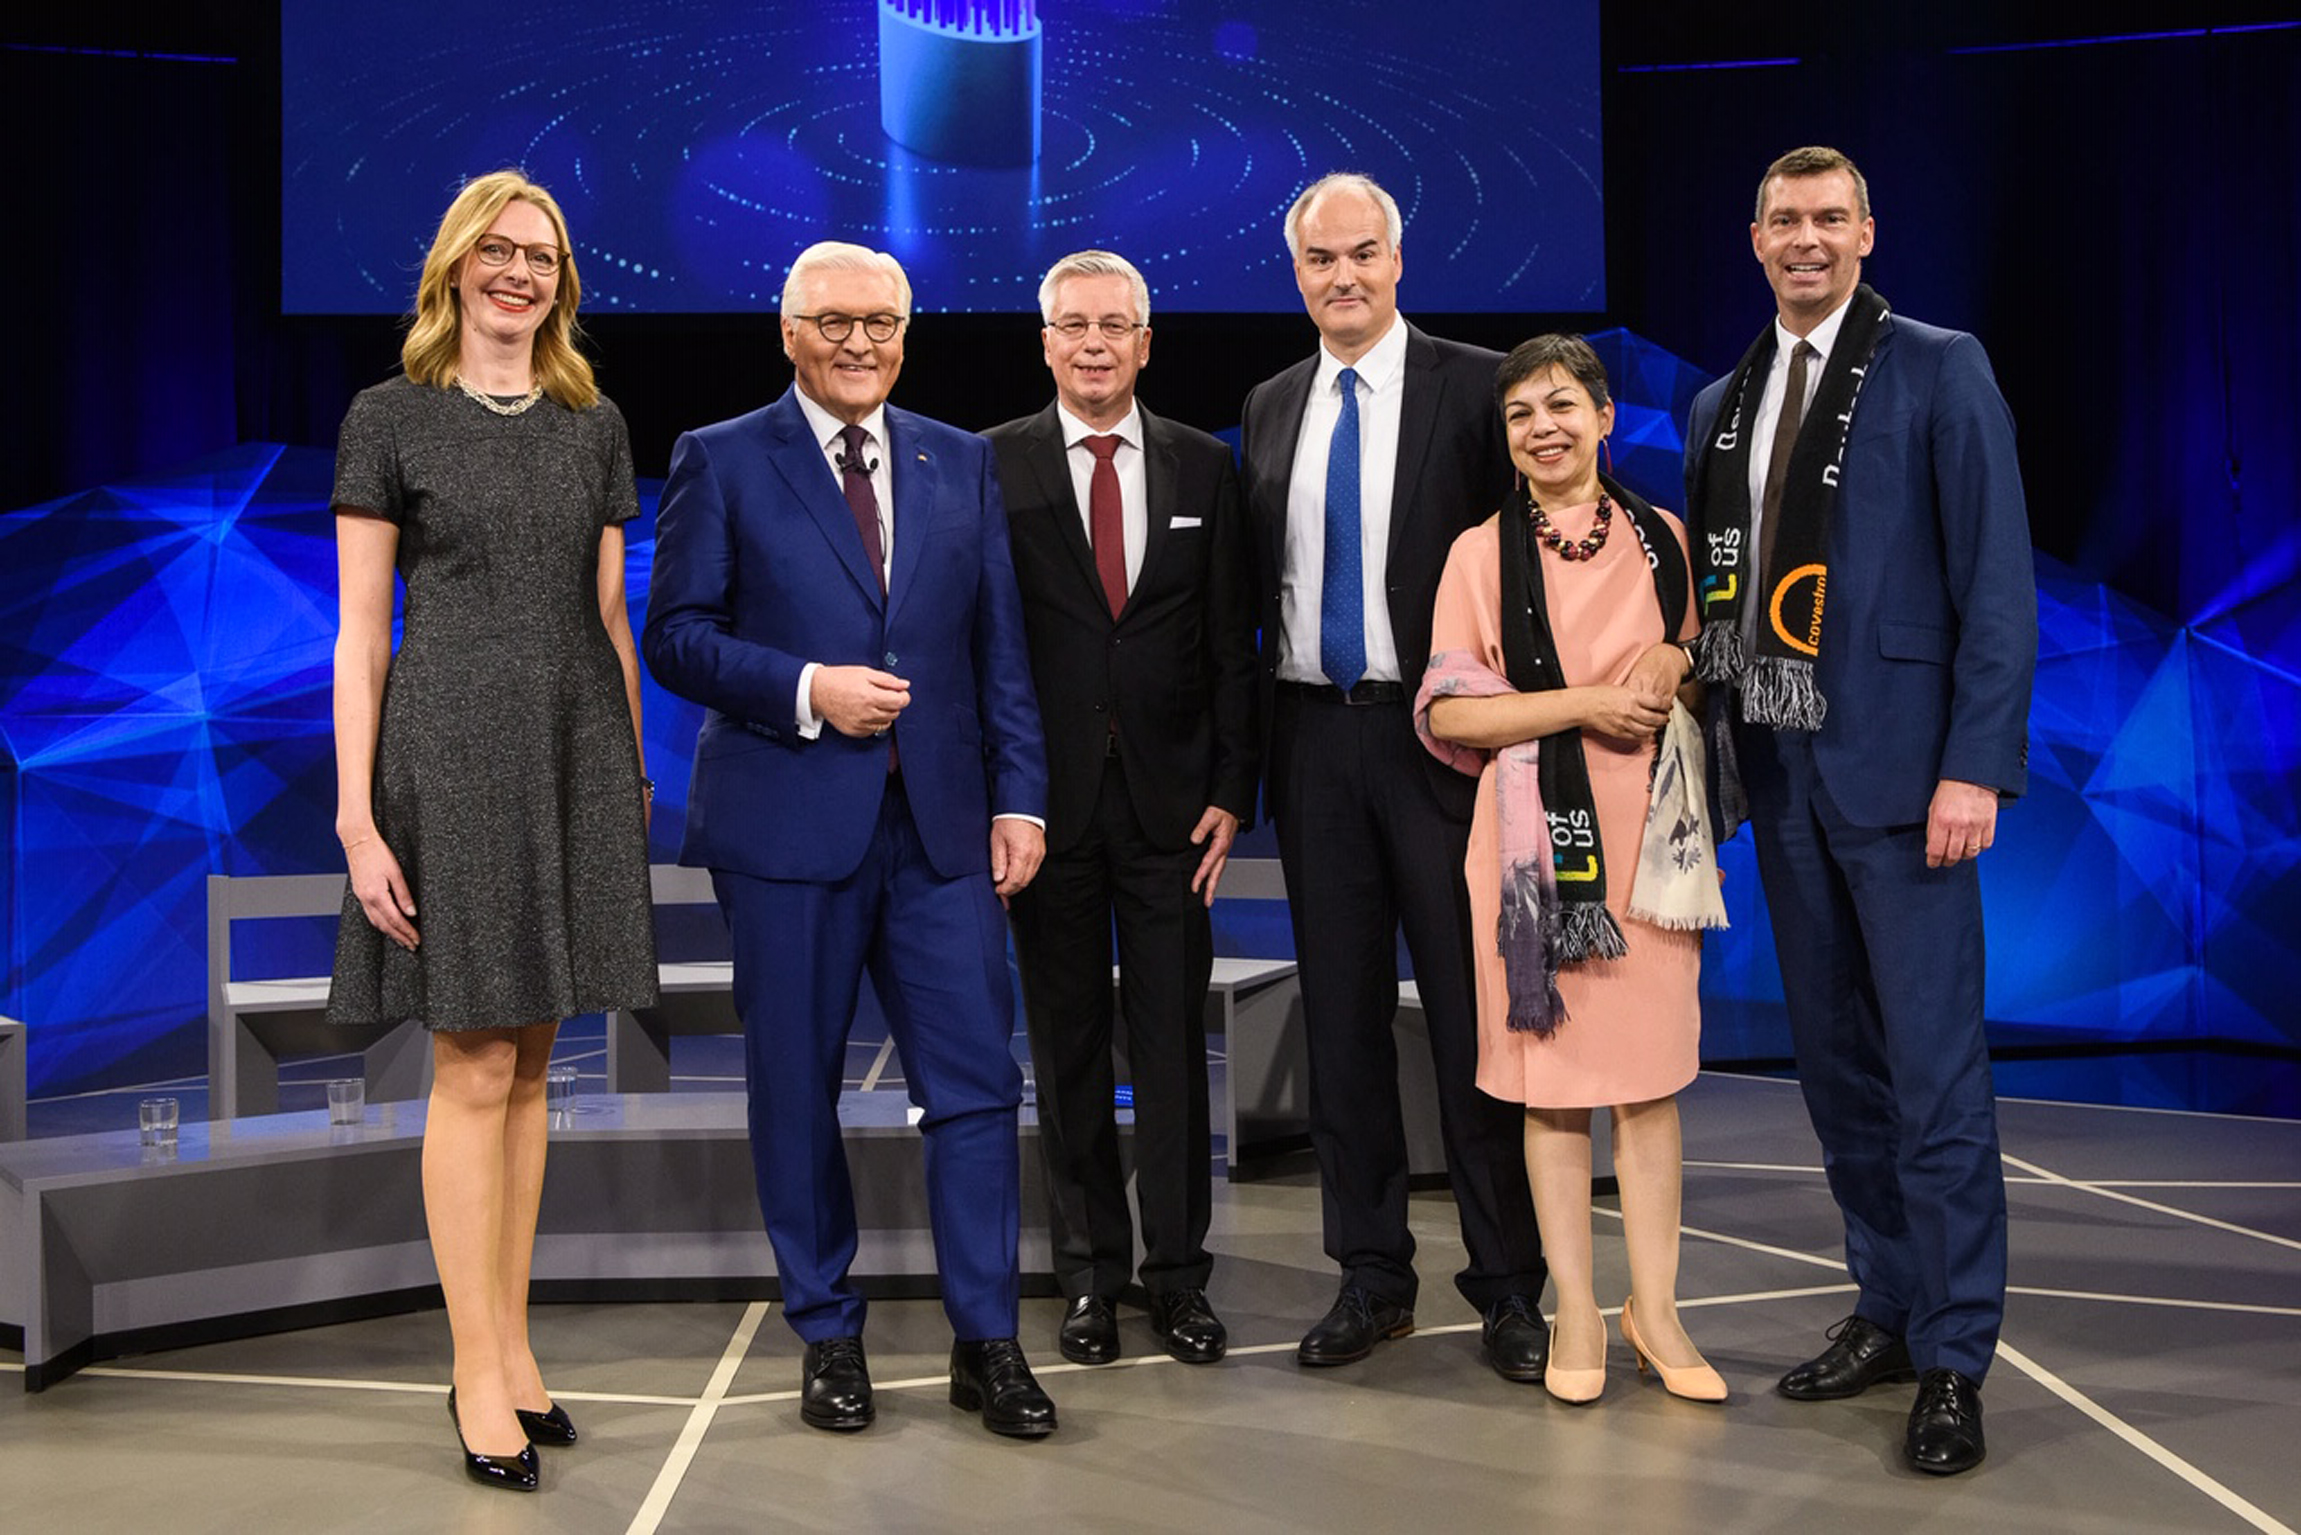 Dr. Berit Stange, Prof. Walter Leitner and Dr. Christoph Guertler in the final round of the German President's Award, with German Federal President Frank-Walter Steinmeier (2nd f. l.), Sucheta Govil, Chief Commercial Officer of Covestro (2nd f. r.) and Dr. Markus Steilemann, CEO Covestro (Source: Covestro)